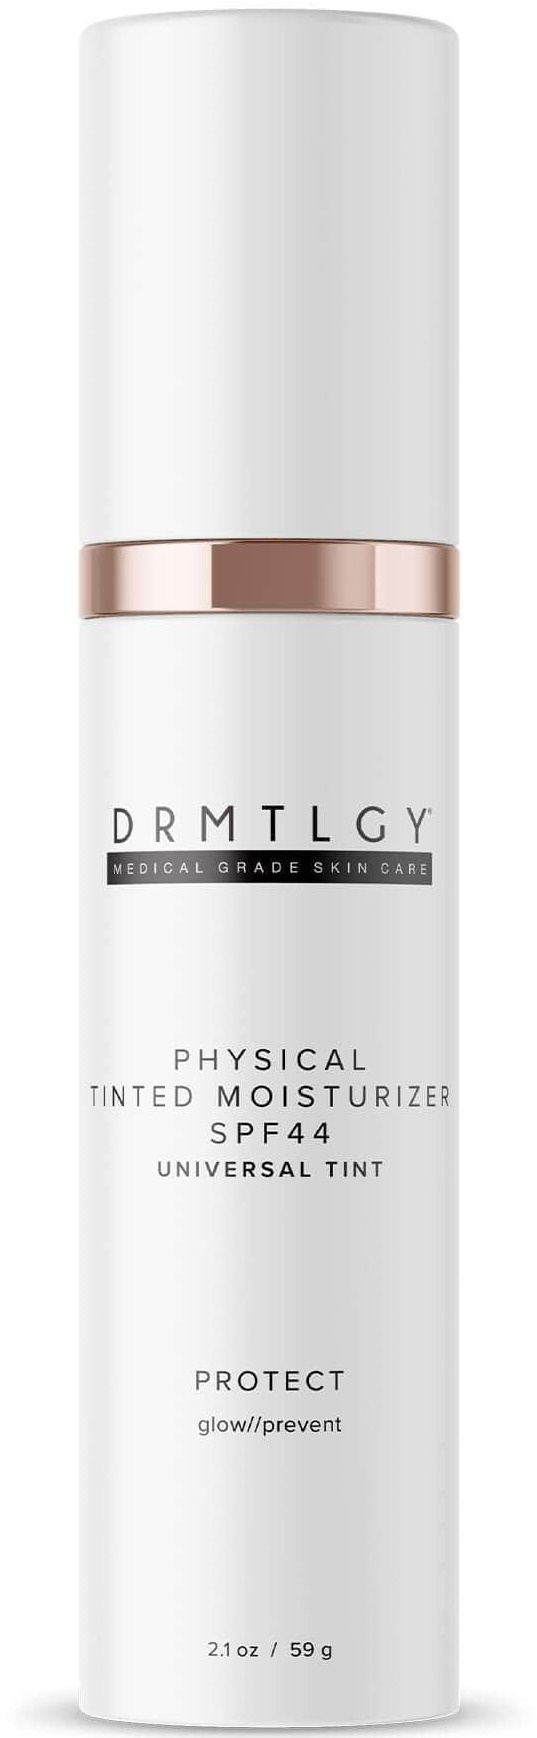 DRMTLGY Physical Universal Tinted Moisturizer SPF 44